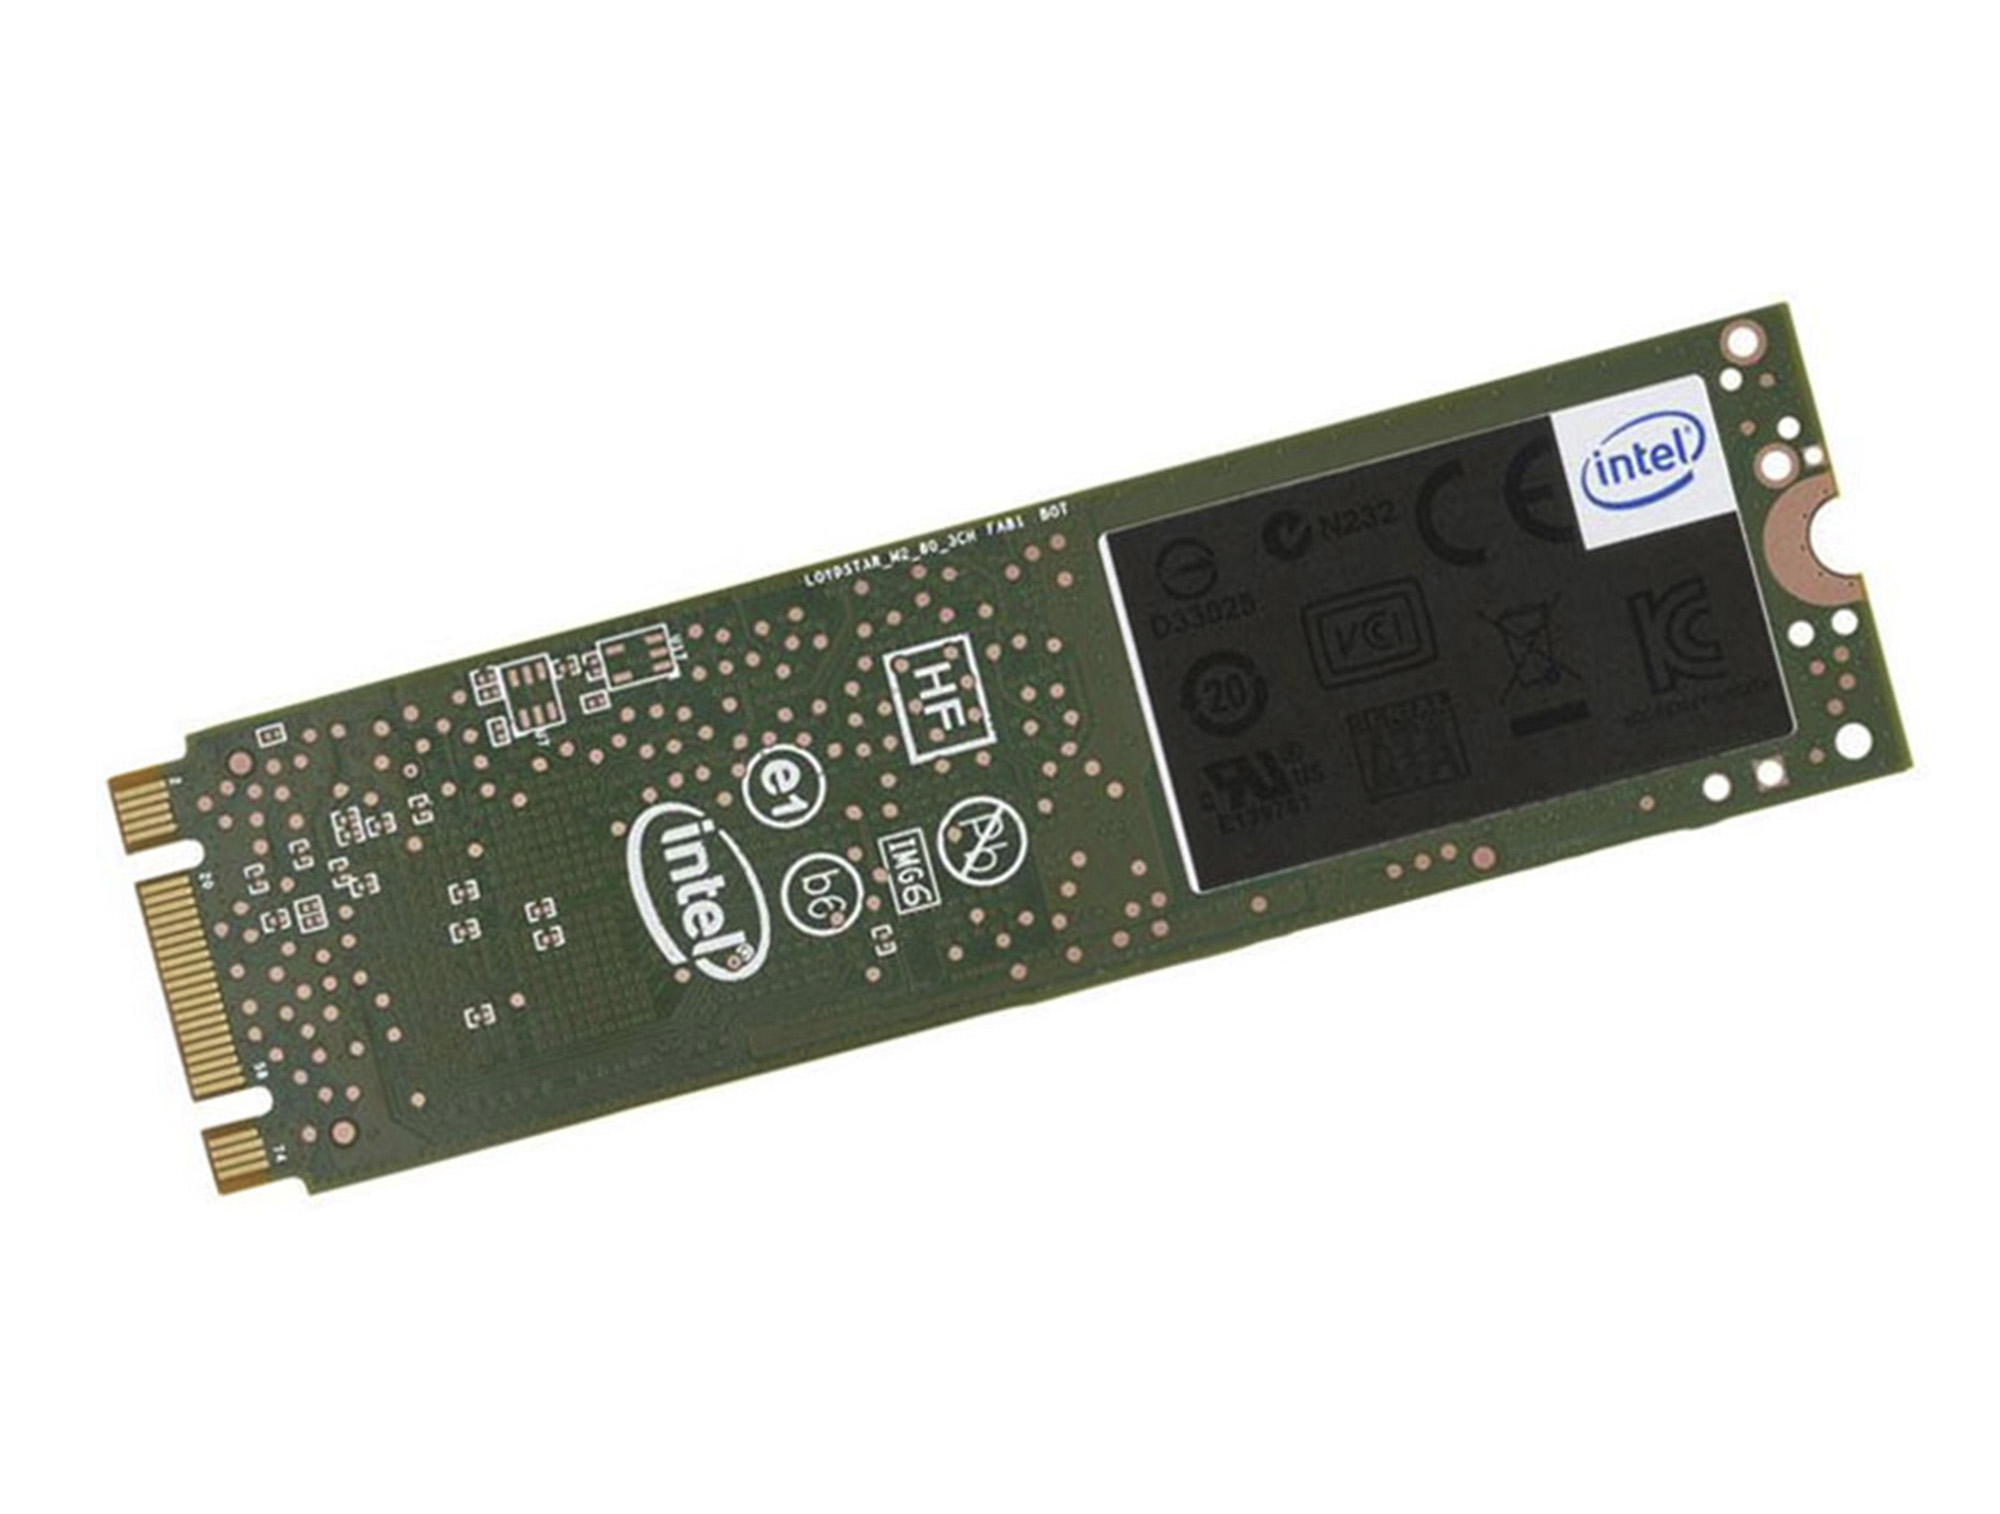 Tigo S300 NGFF M.2 2280 240GB SSD For Laptop Desktop HDD Replacement With M